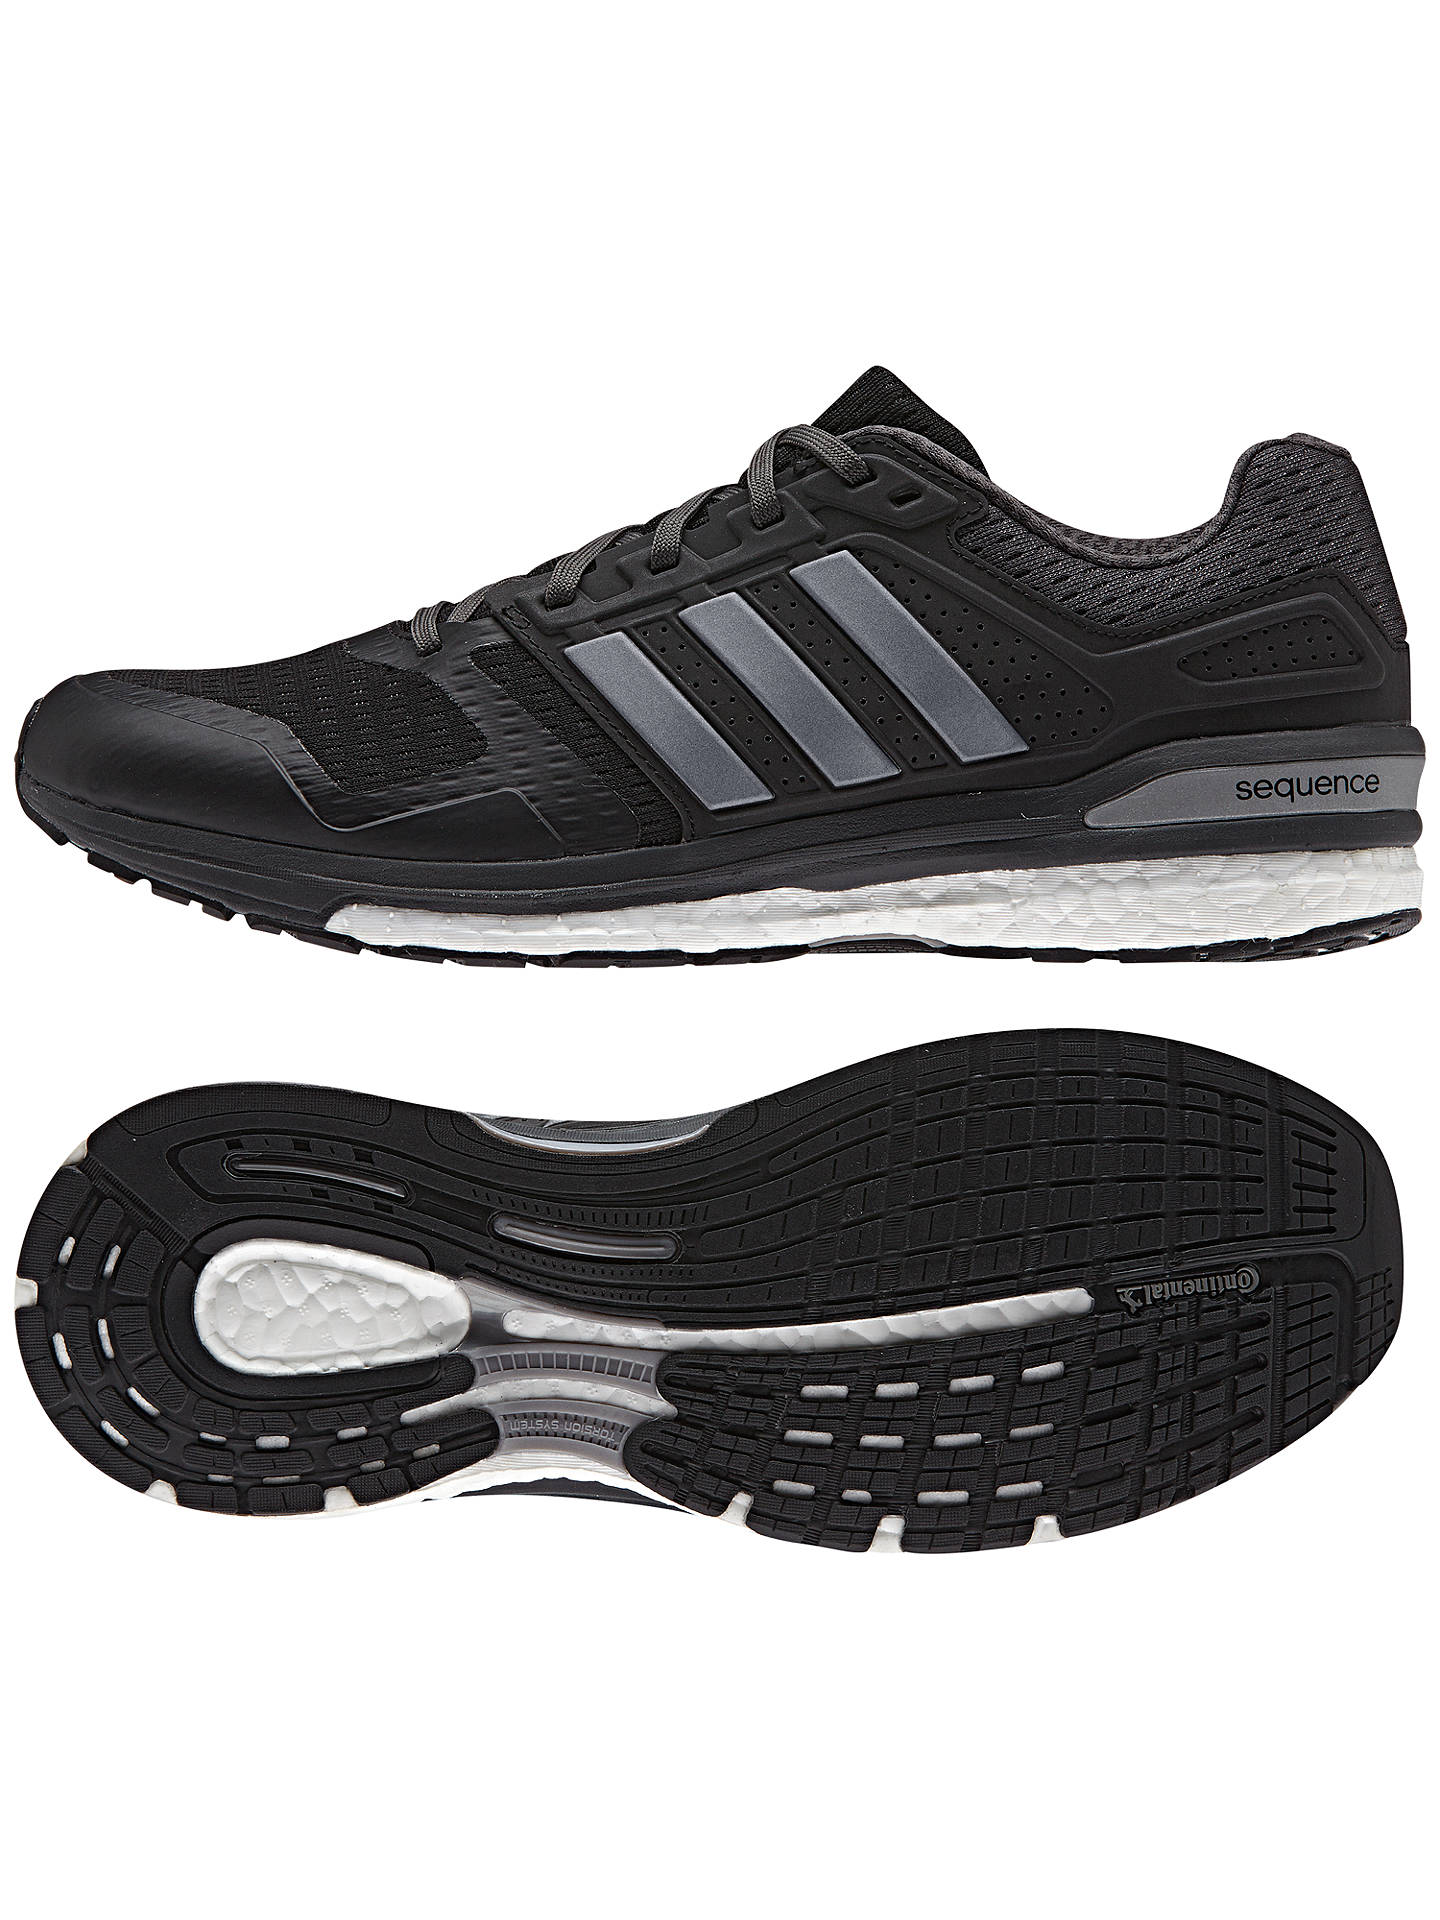 Velo Agricultura fluido  Adidas Supernova Sequence Boost 8 Men's Running Shoes, Black at John Lewis  & Partners